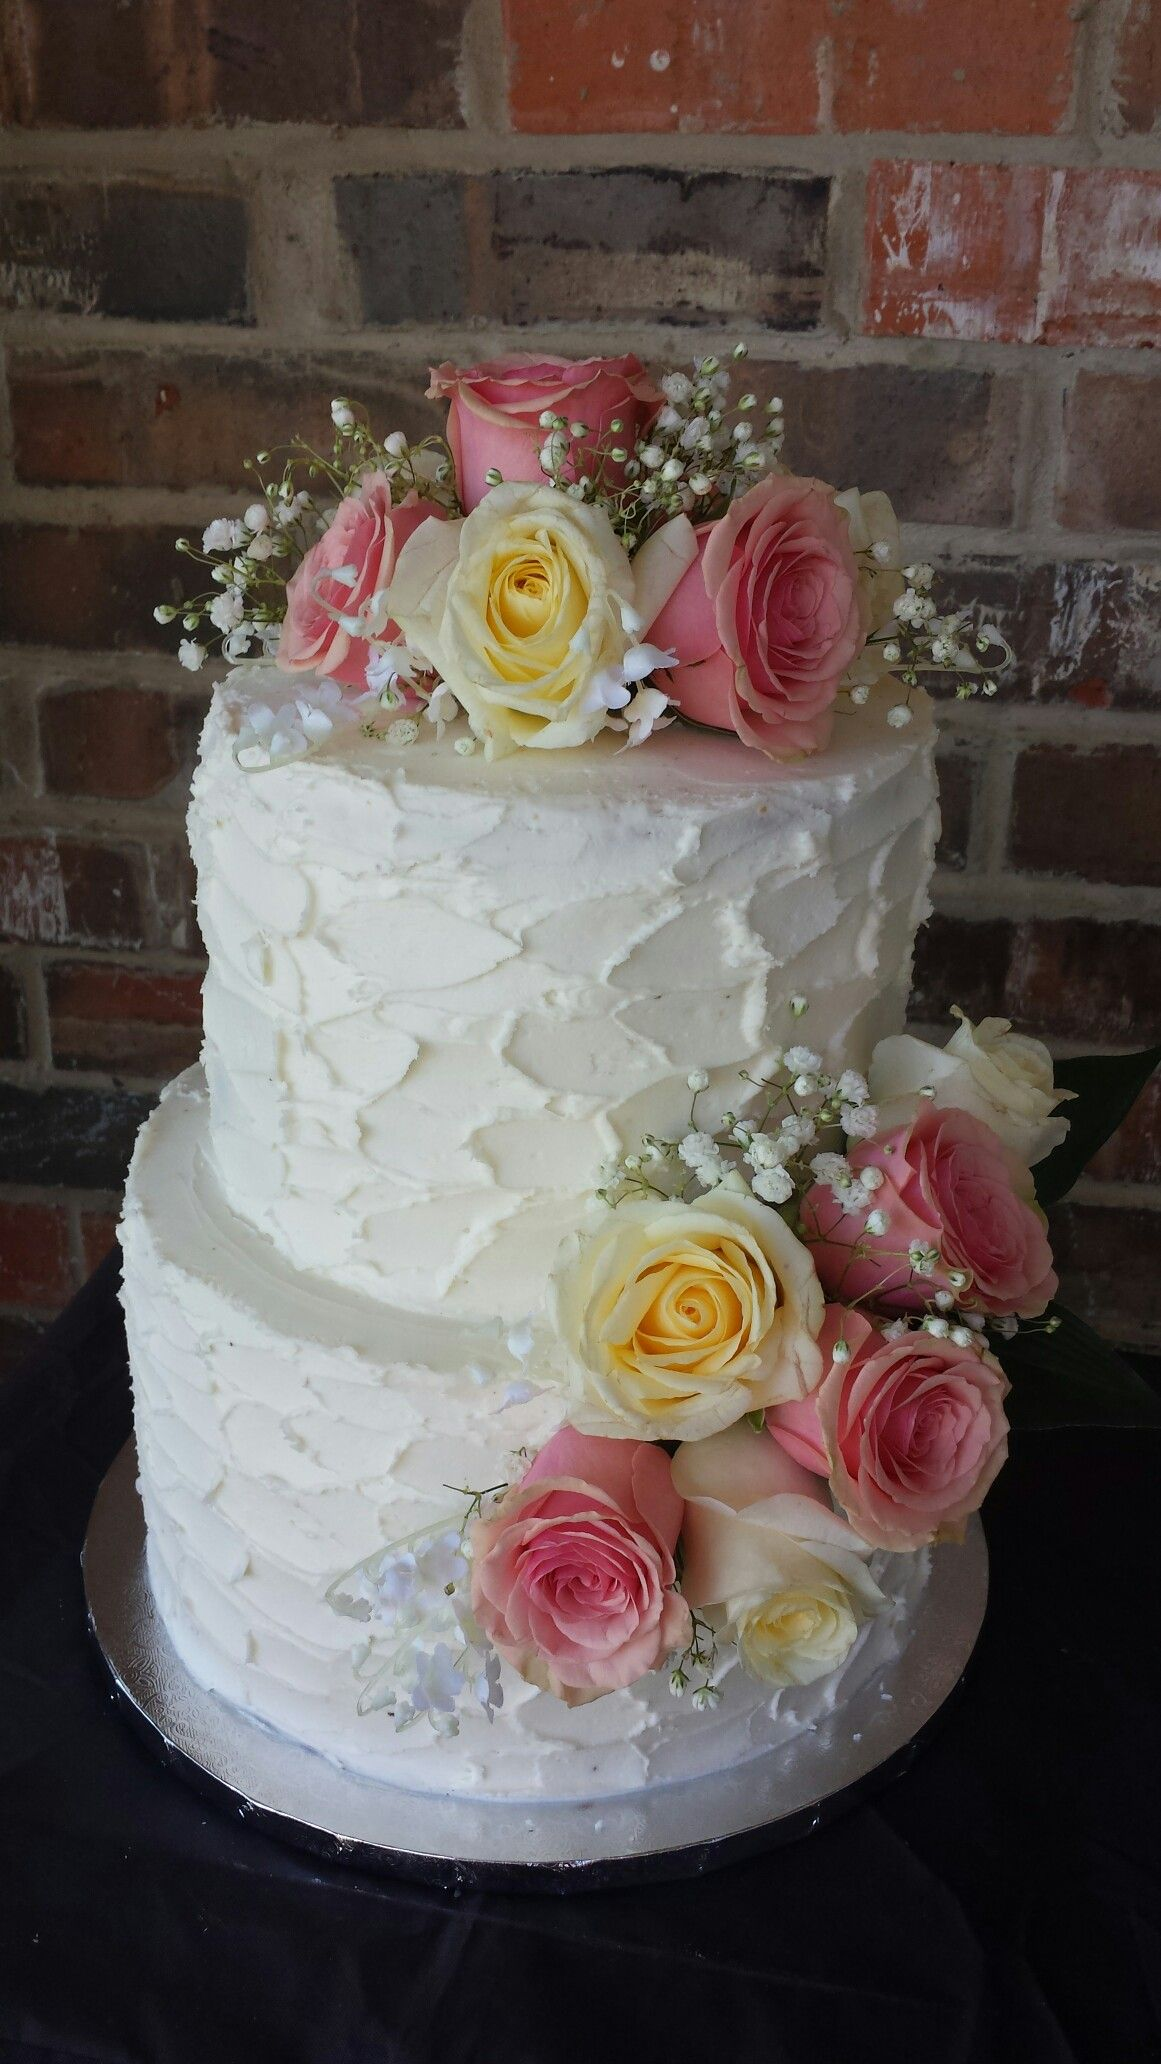 Rustic buttercream wedding cake by max amor cakes max amor cakes